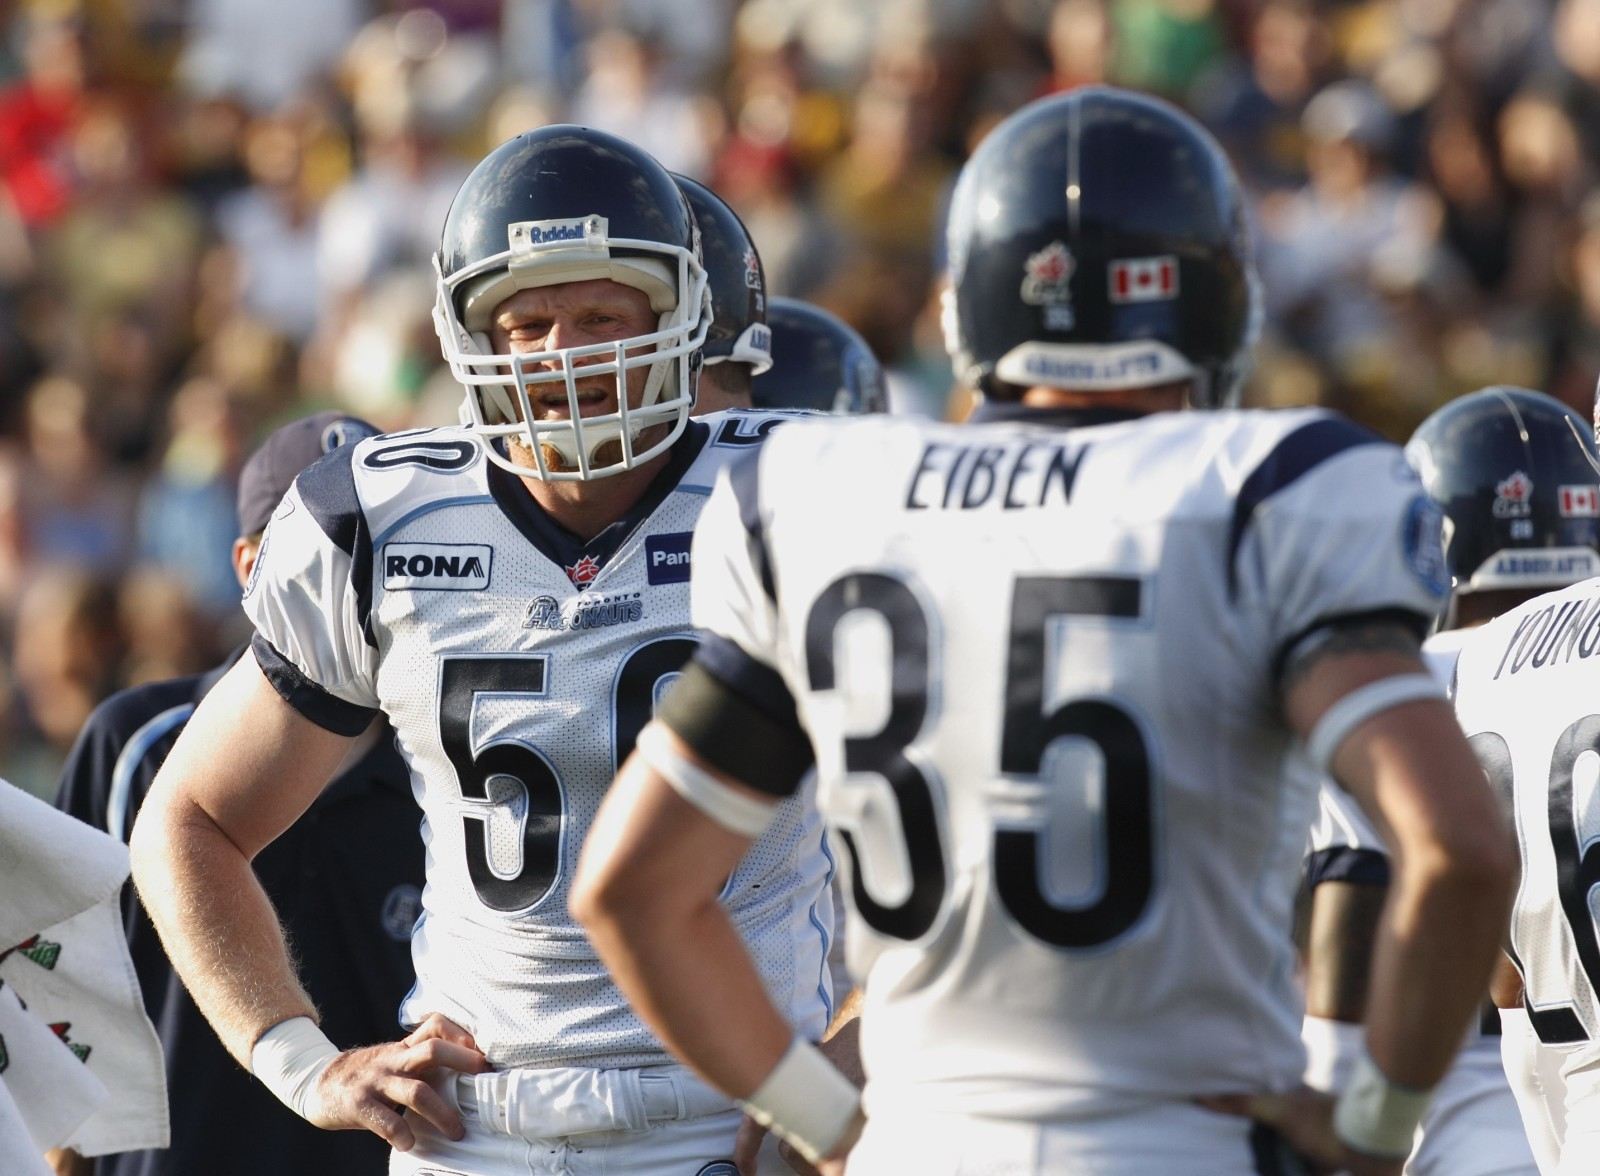 Linebackers Mike O'Shea (50) and Kevin Eiben (35) look at each other during a time out on Saturday, July 7, 2007. CFL PHOTO/K. Rodriguez